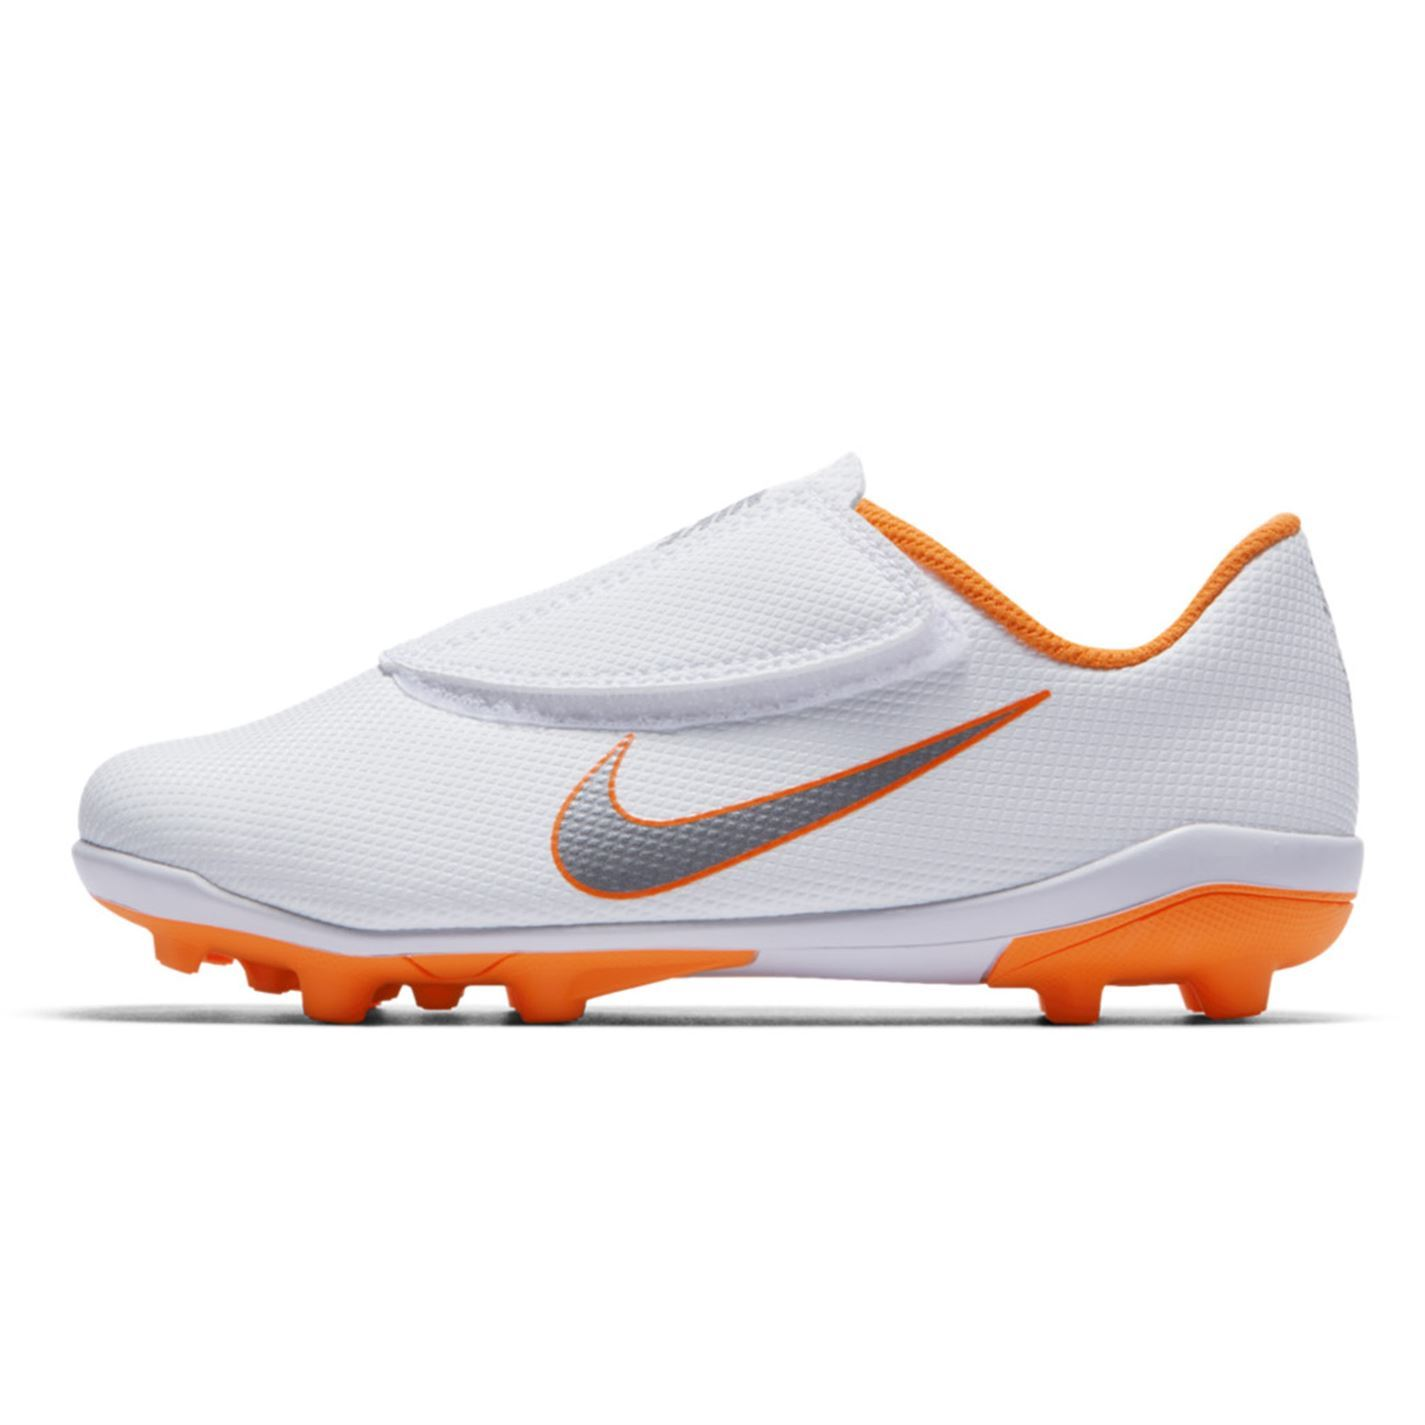 ... Nike Mercurial Vapor Club FG Football Boots Childs White Soccer Shoes  Cleats ... 39c42a947cc5d